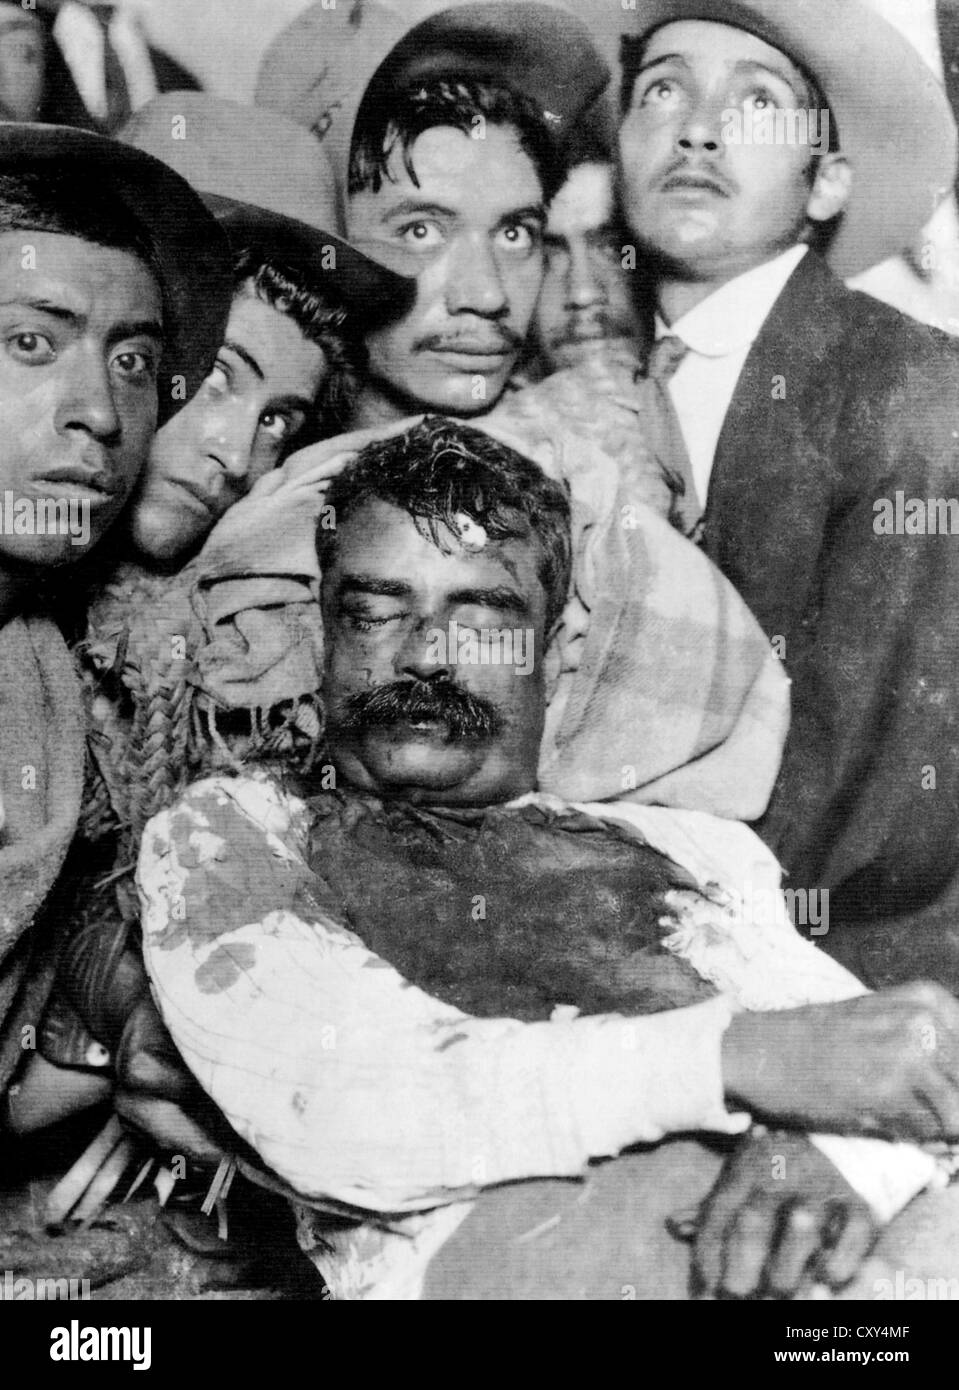 PANCHO VILLA (1878-1923) Mexican revolutionary general after his murder in  Parral on 20 July 1923